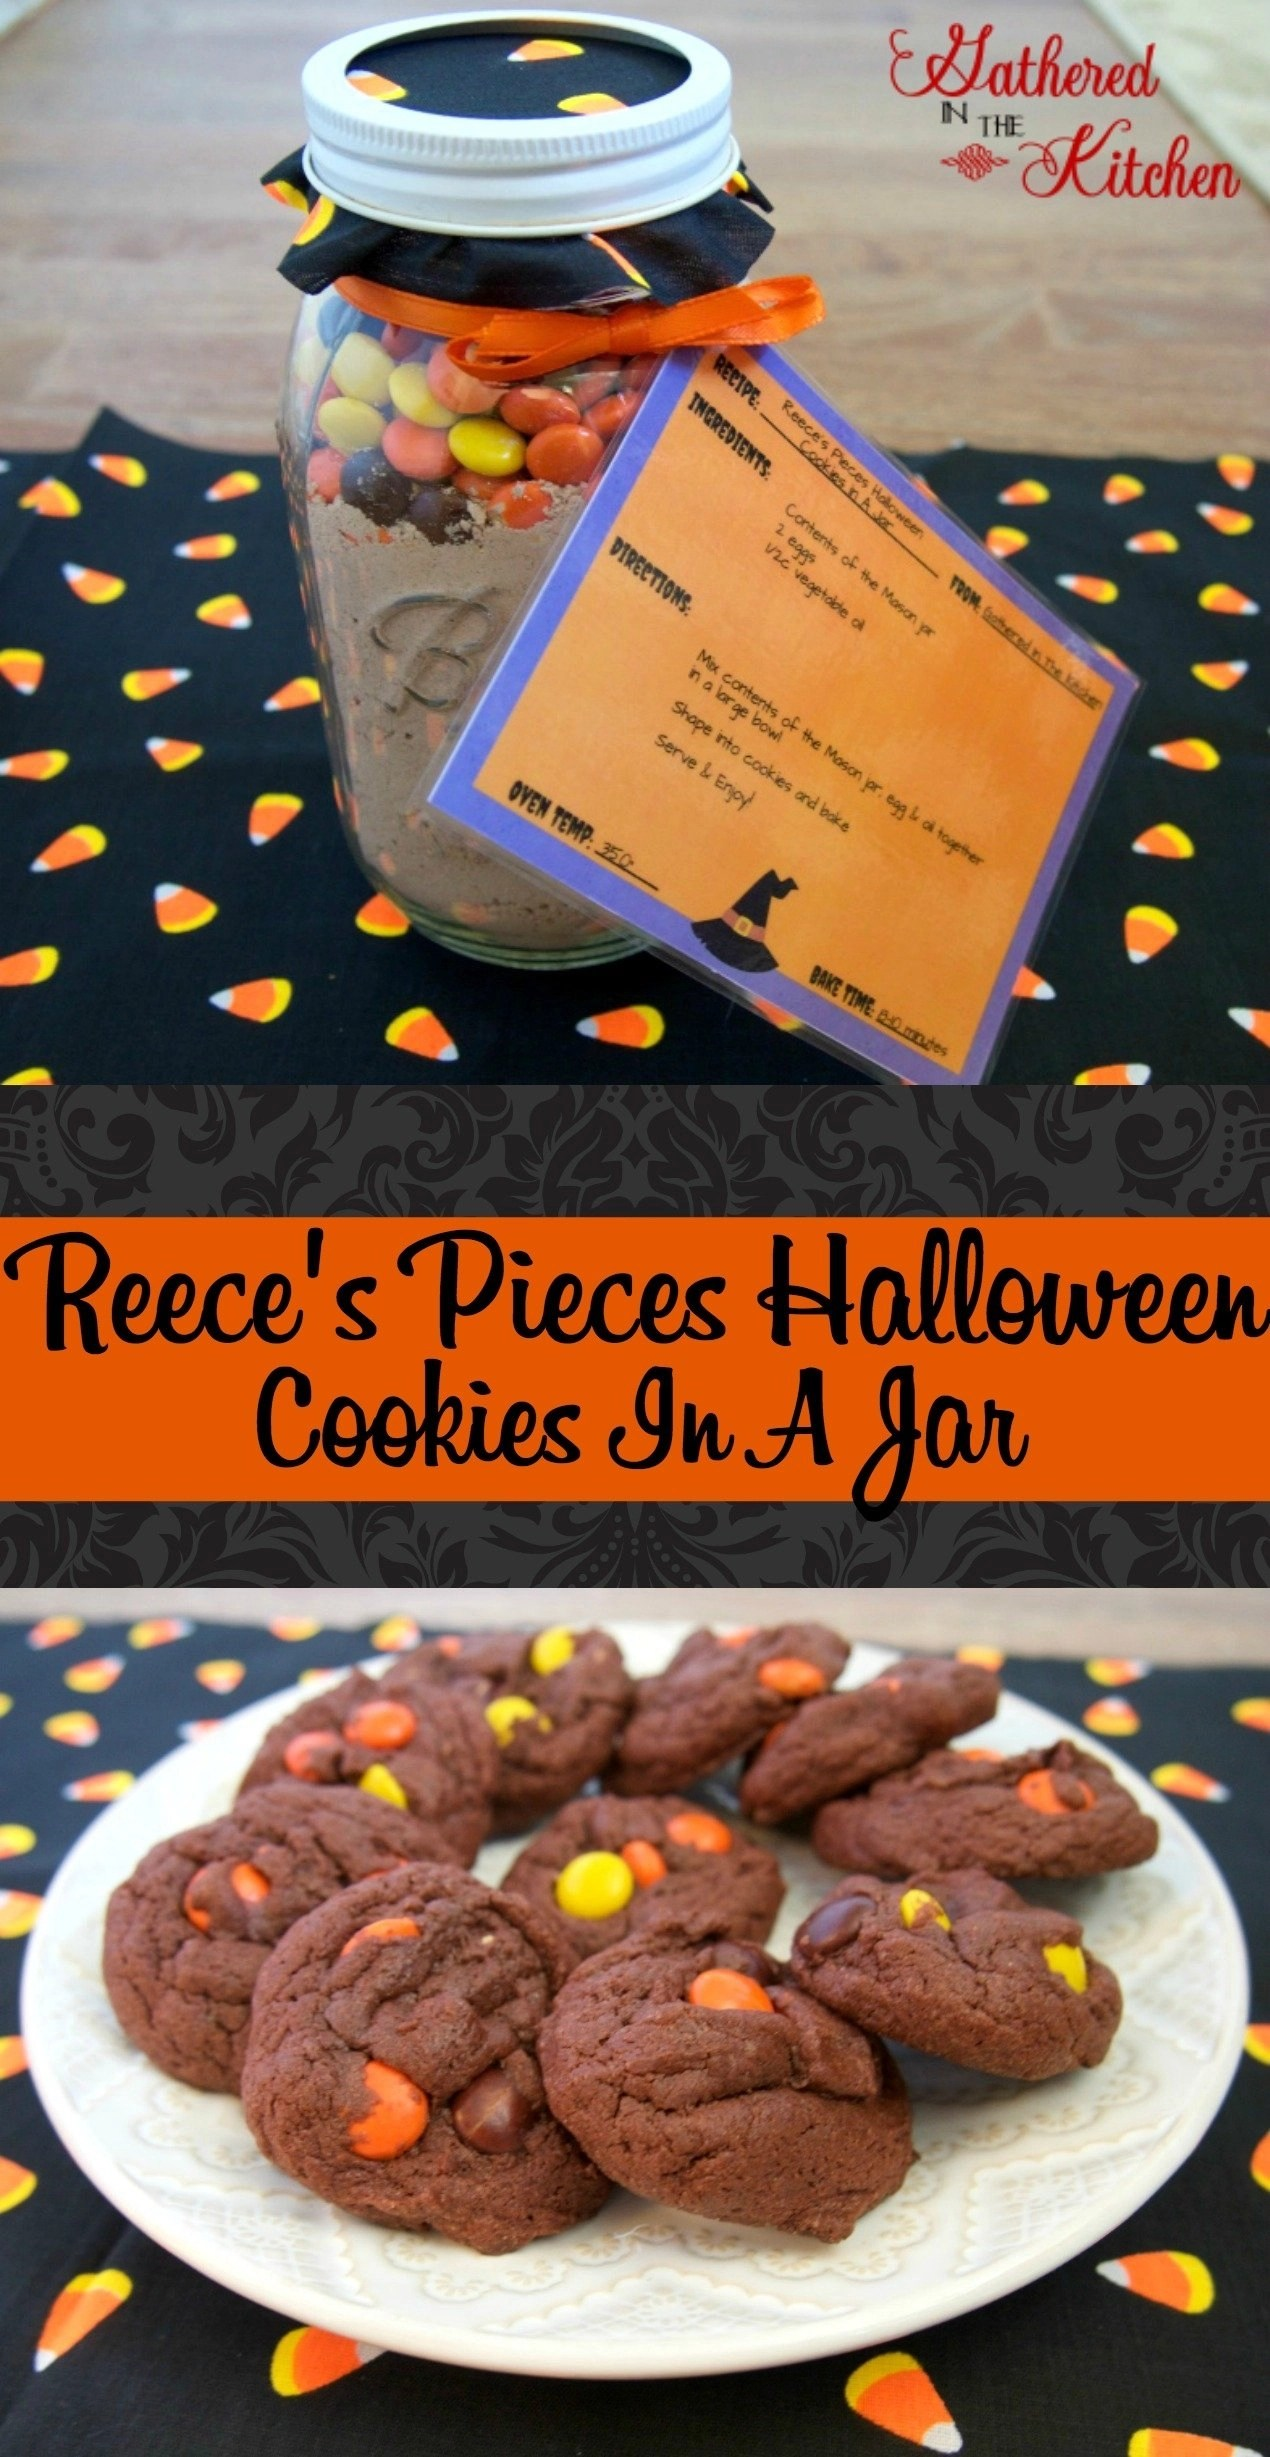 reeces-pieces-halloween-cookies-in-a-jae